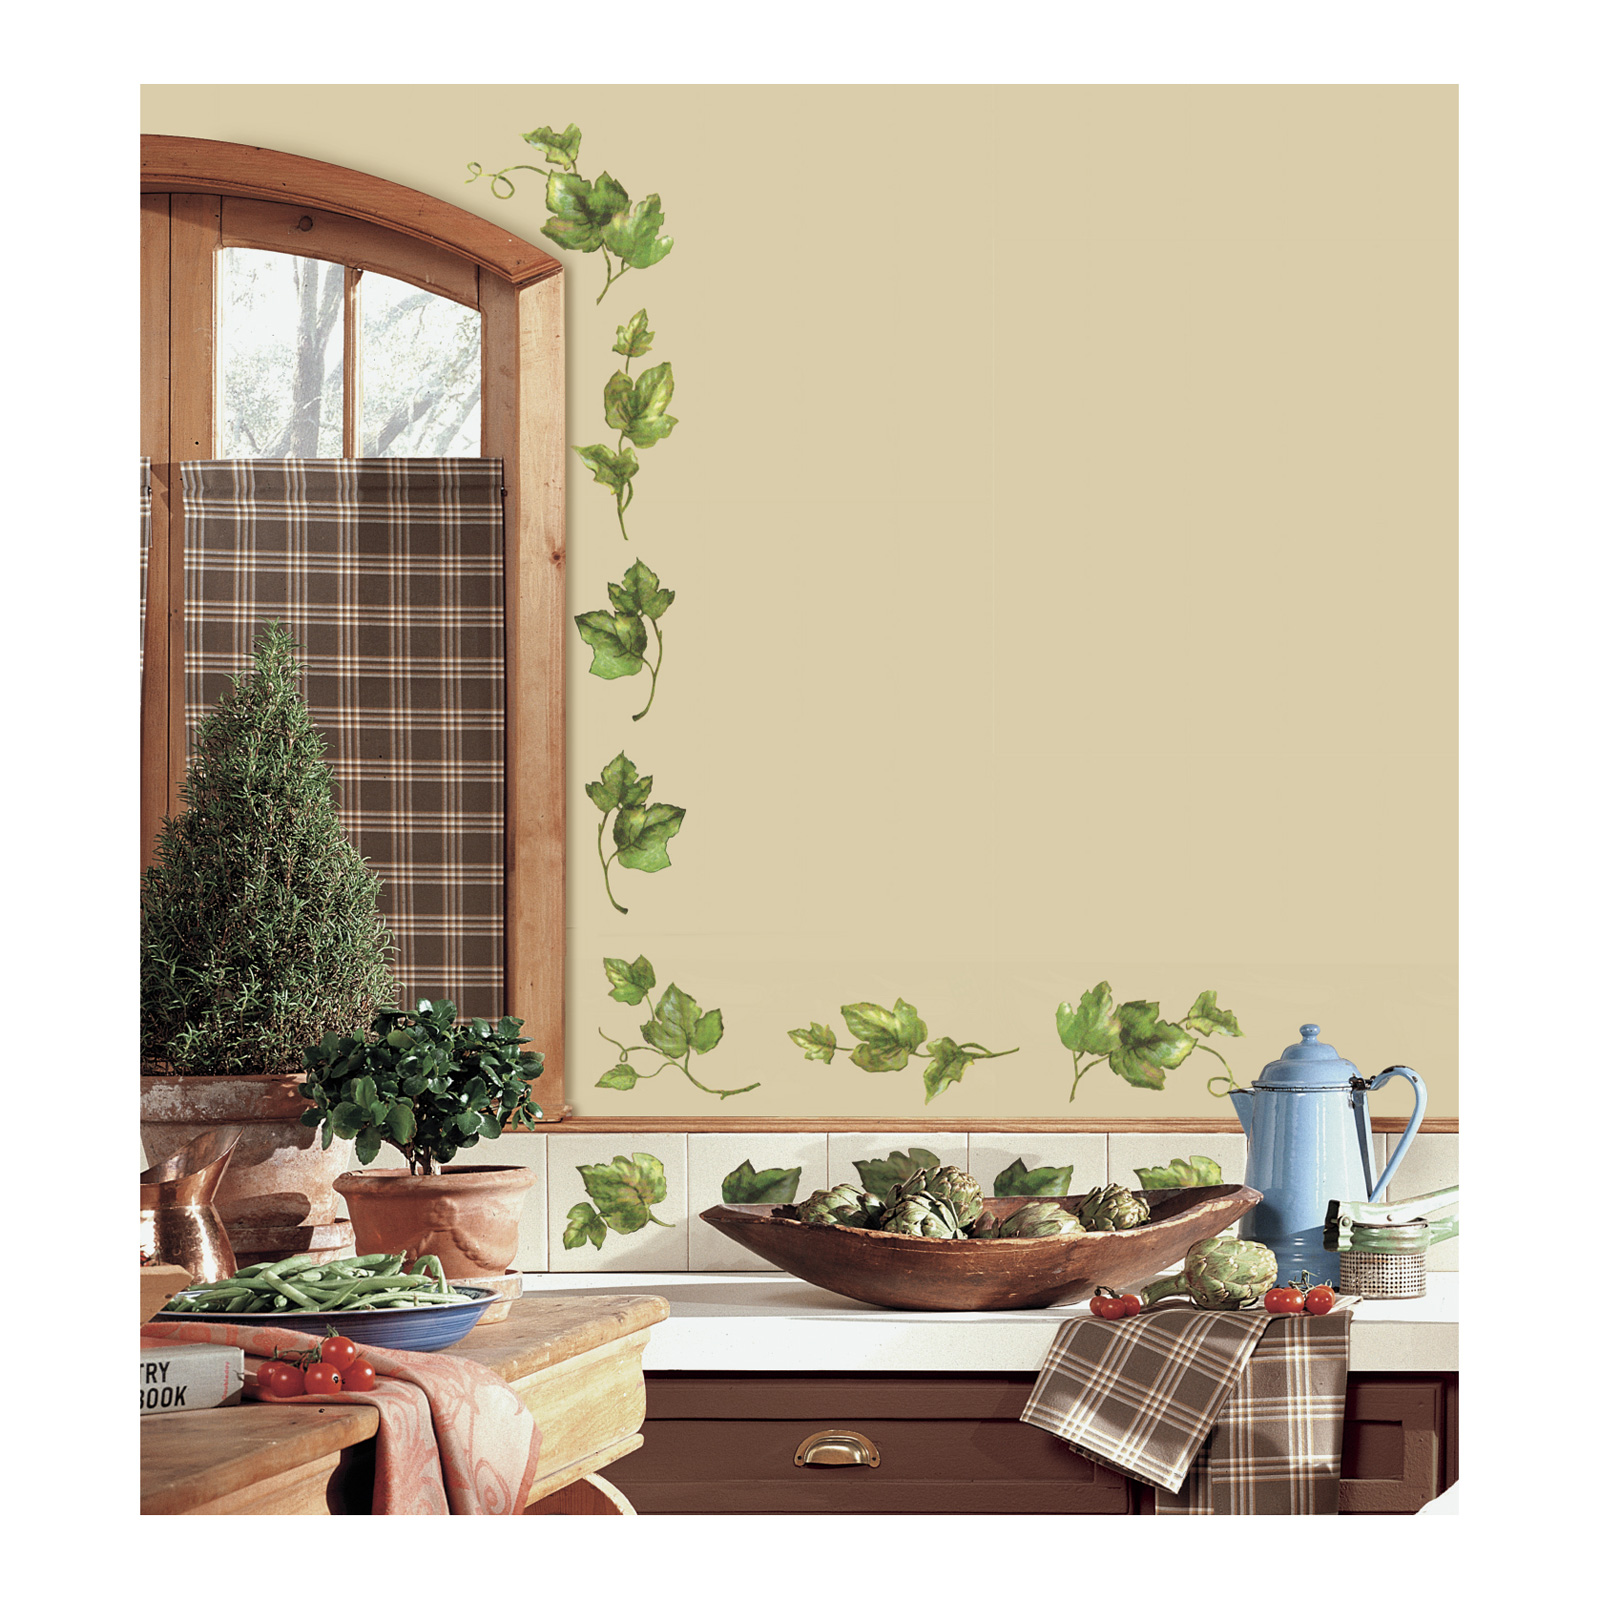 Evergreen Ivy Wall Decals by Stardom Specialty in USA